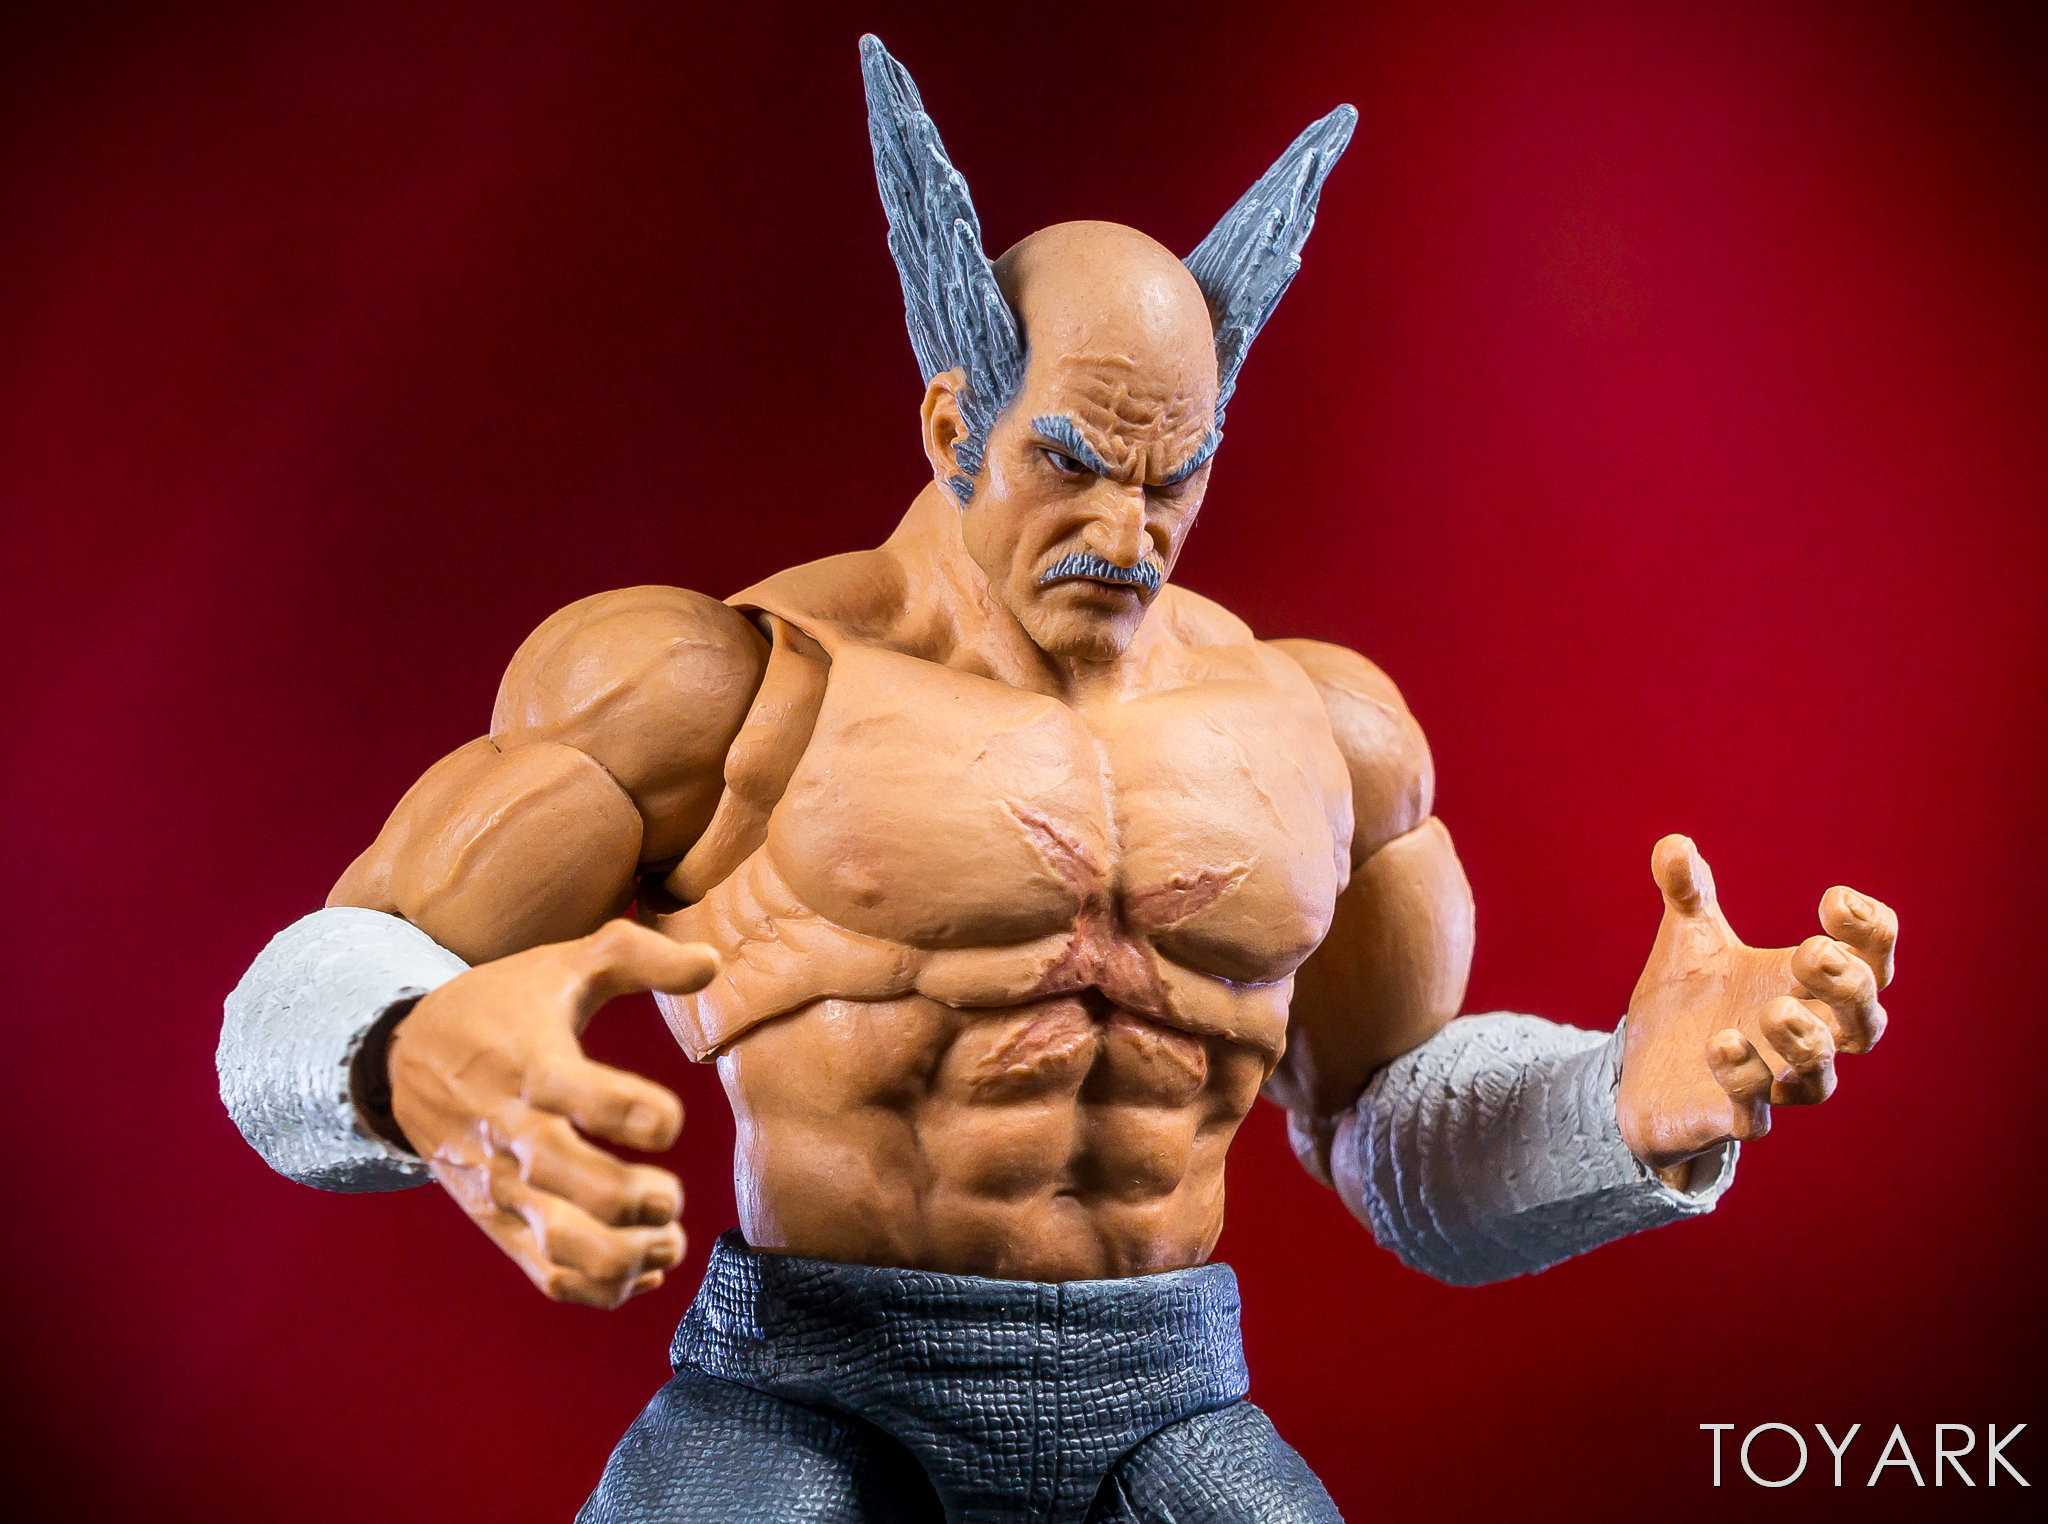 https://news.toyark.com/wp-content/uploads/sites/4/2018/05/Storm-Heihachi-Figure-016.jpg